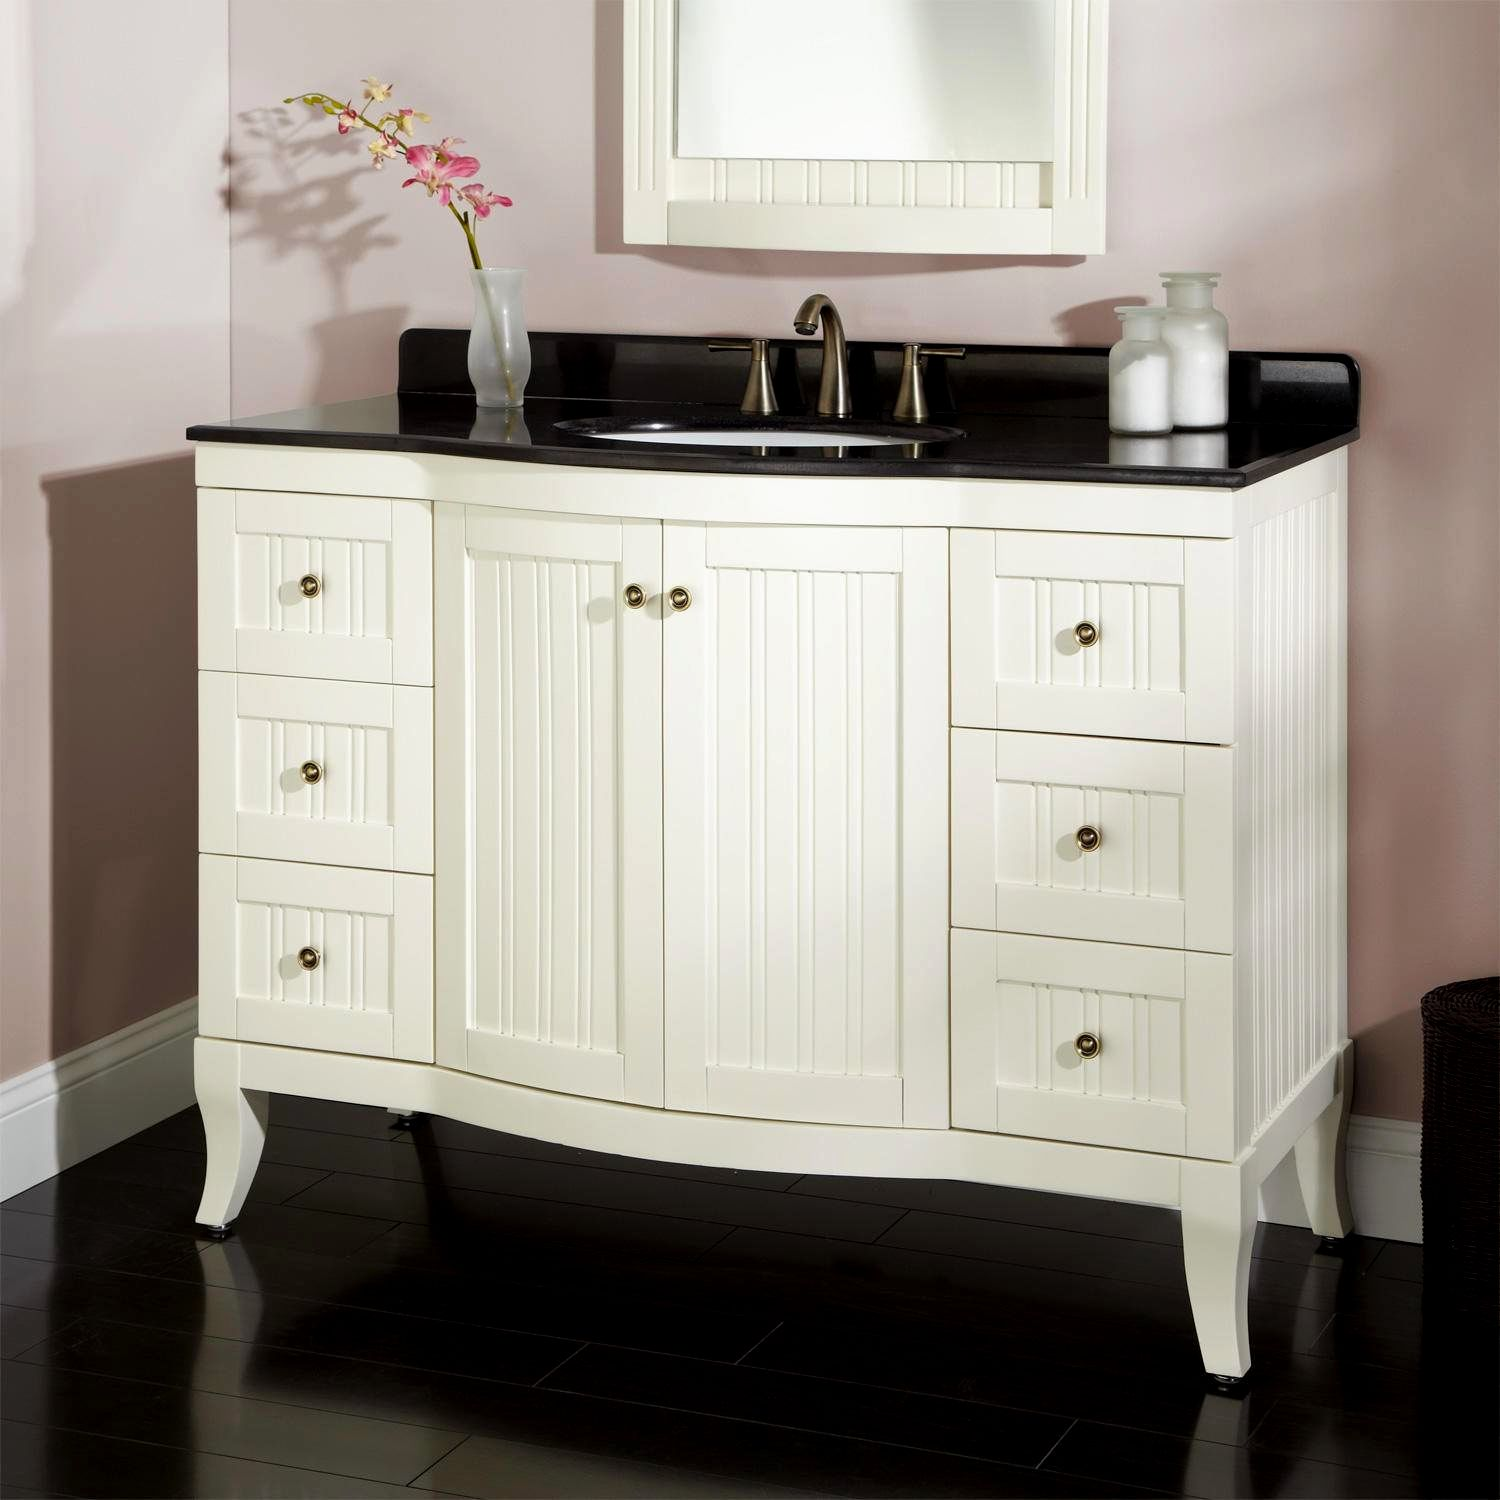 fantastic bathroom double vanities with tops gallery-Wonderful Bathroom Double Vanities with tops Gallery